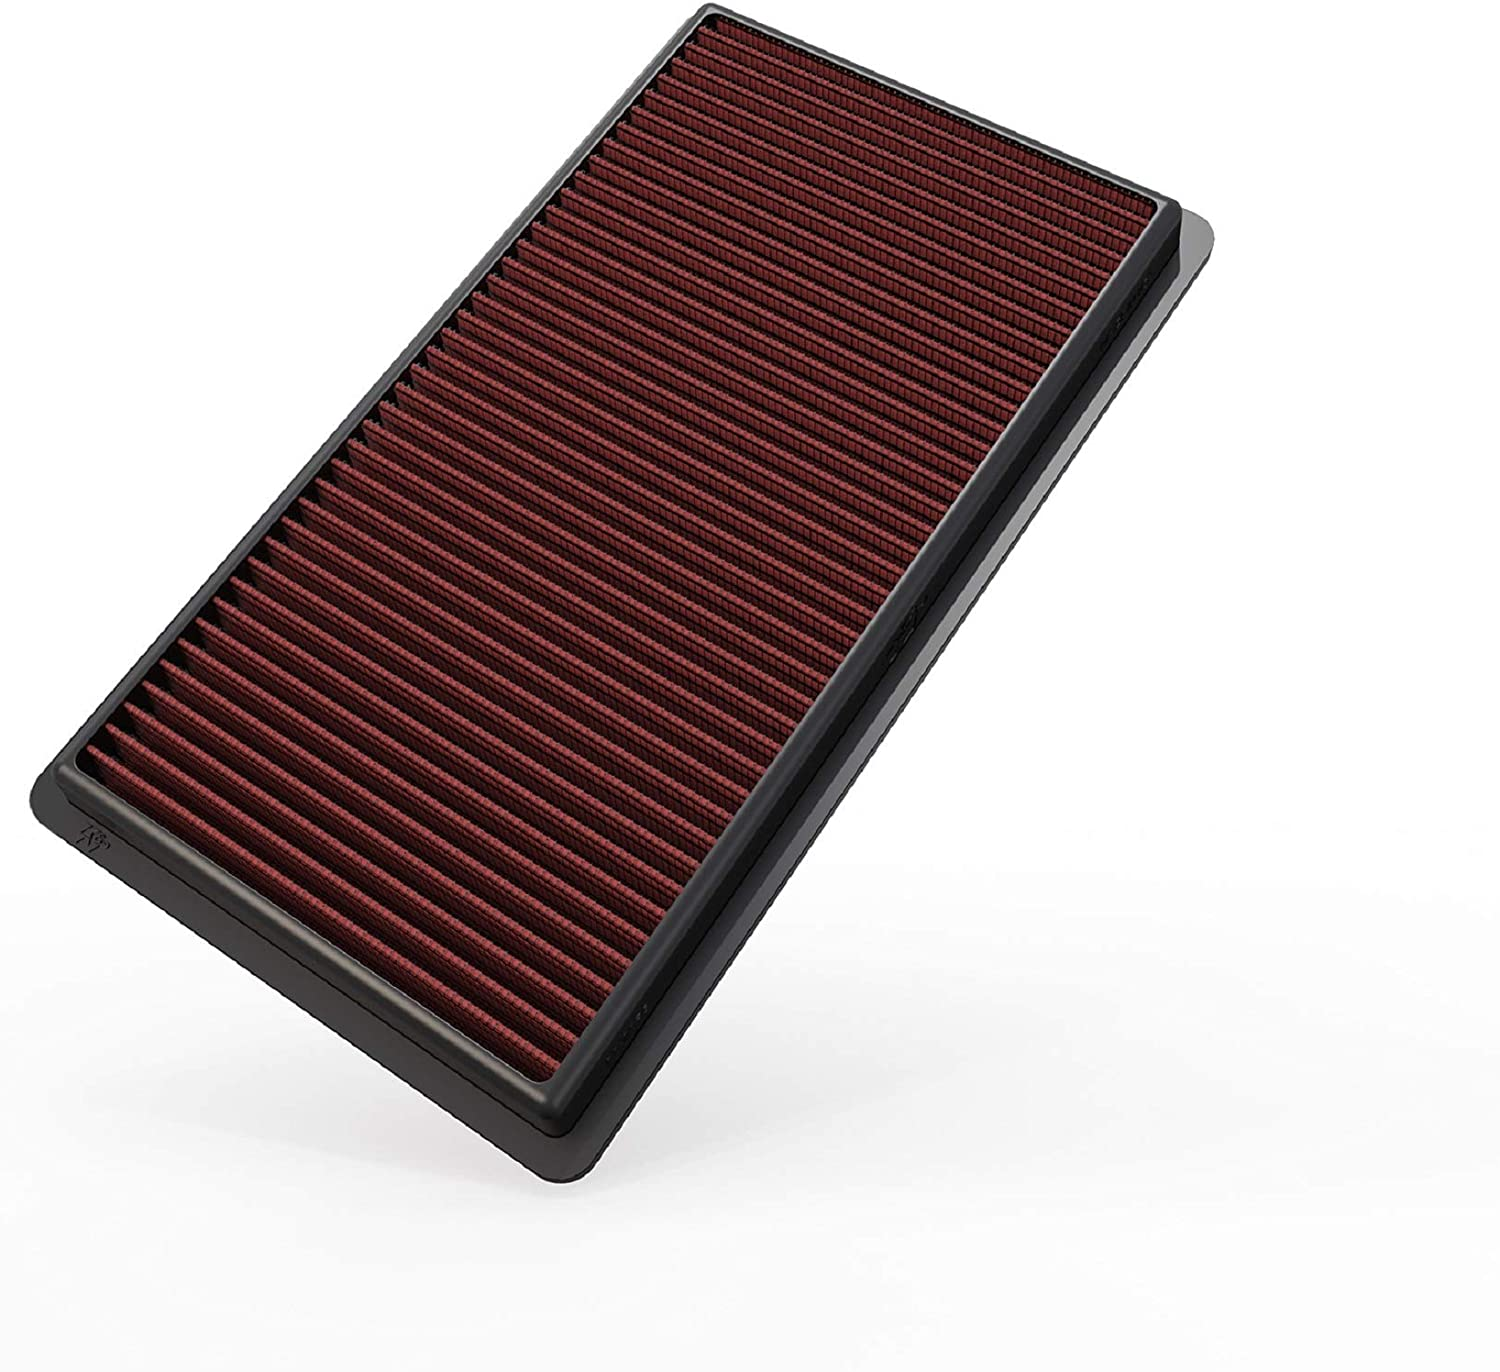 K&N Engine Air Filter: High Performance, Premium, Washable, Replacement Filter: 2007-2019 Ford/Lincoln SUV and Compact V6/L4 (Explorer, Flex, Taurus, Edge, MKT, MKS), 33-2395